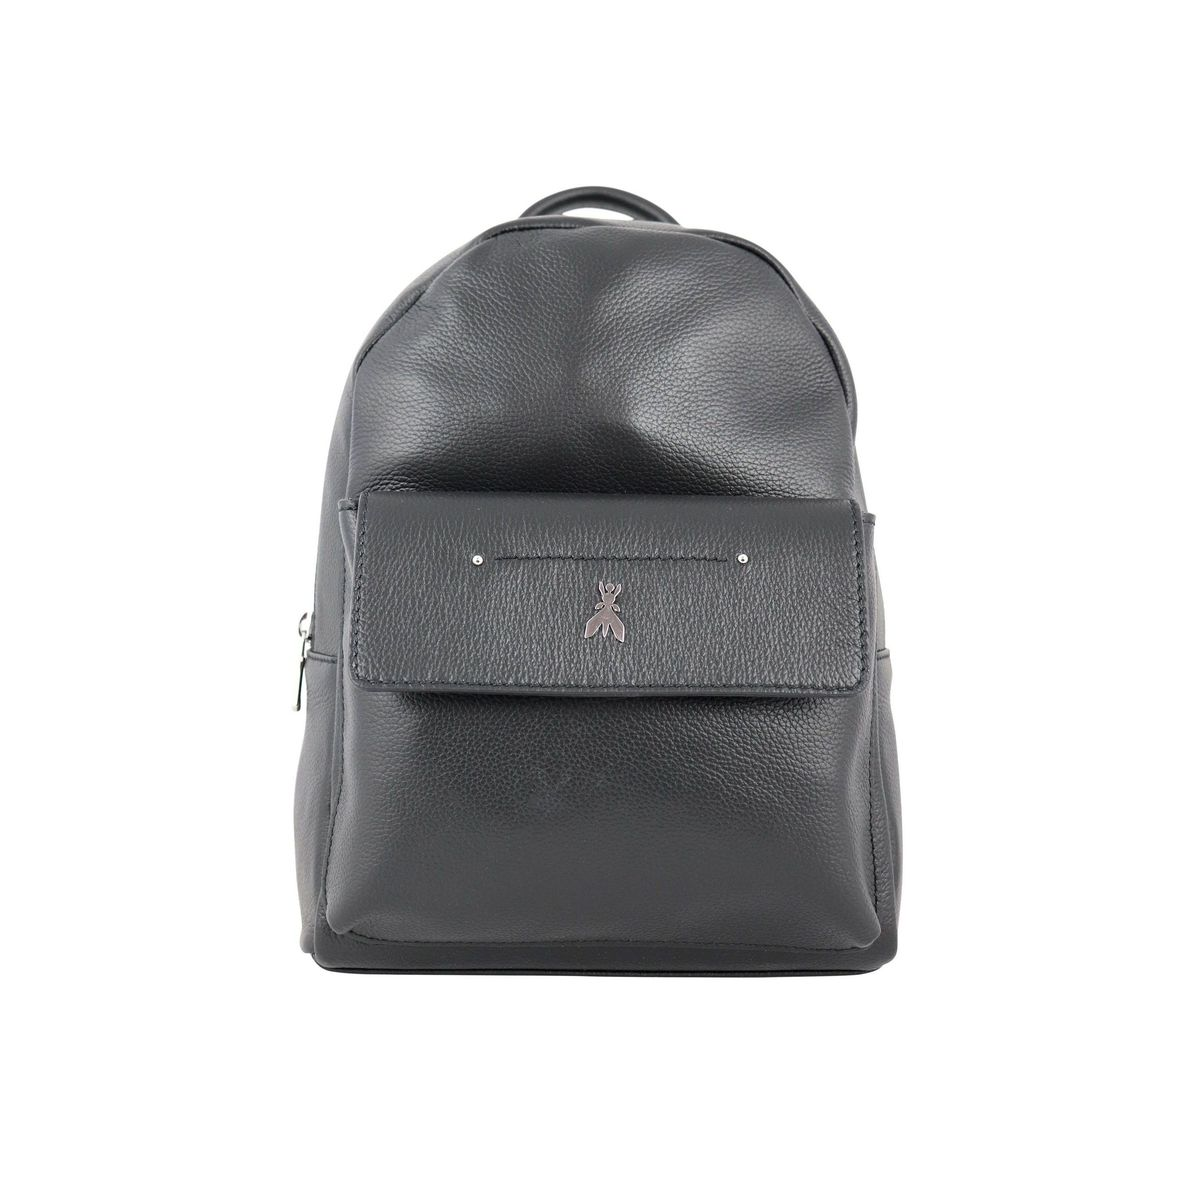 Leather backpack with flap pocket and fly logo Black Patrizia Pepe